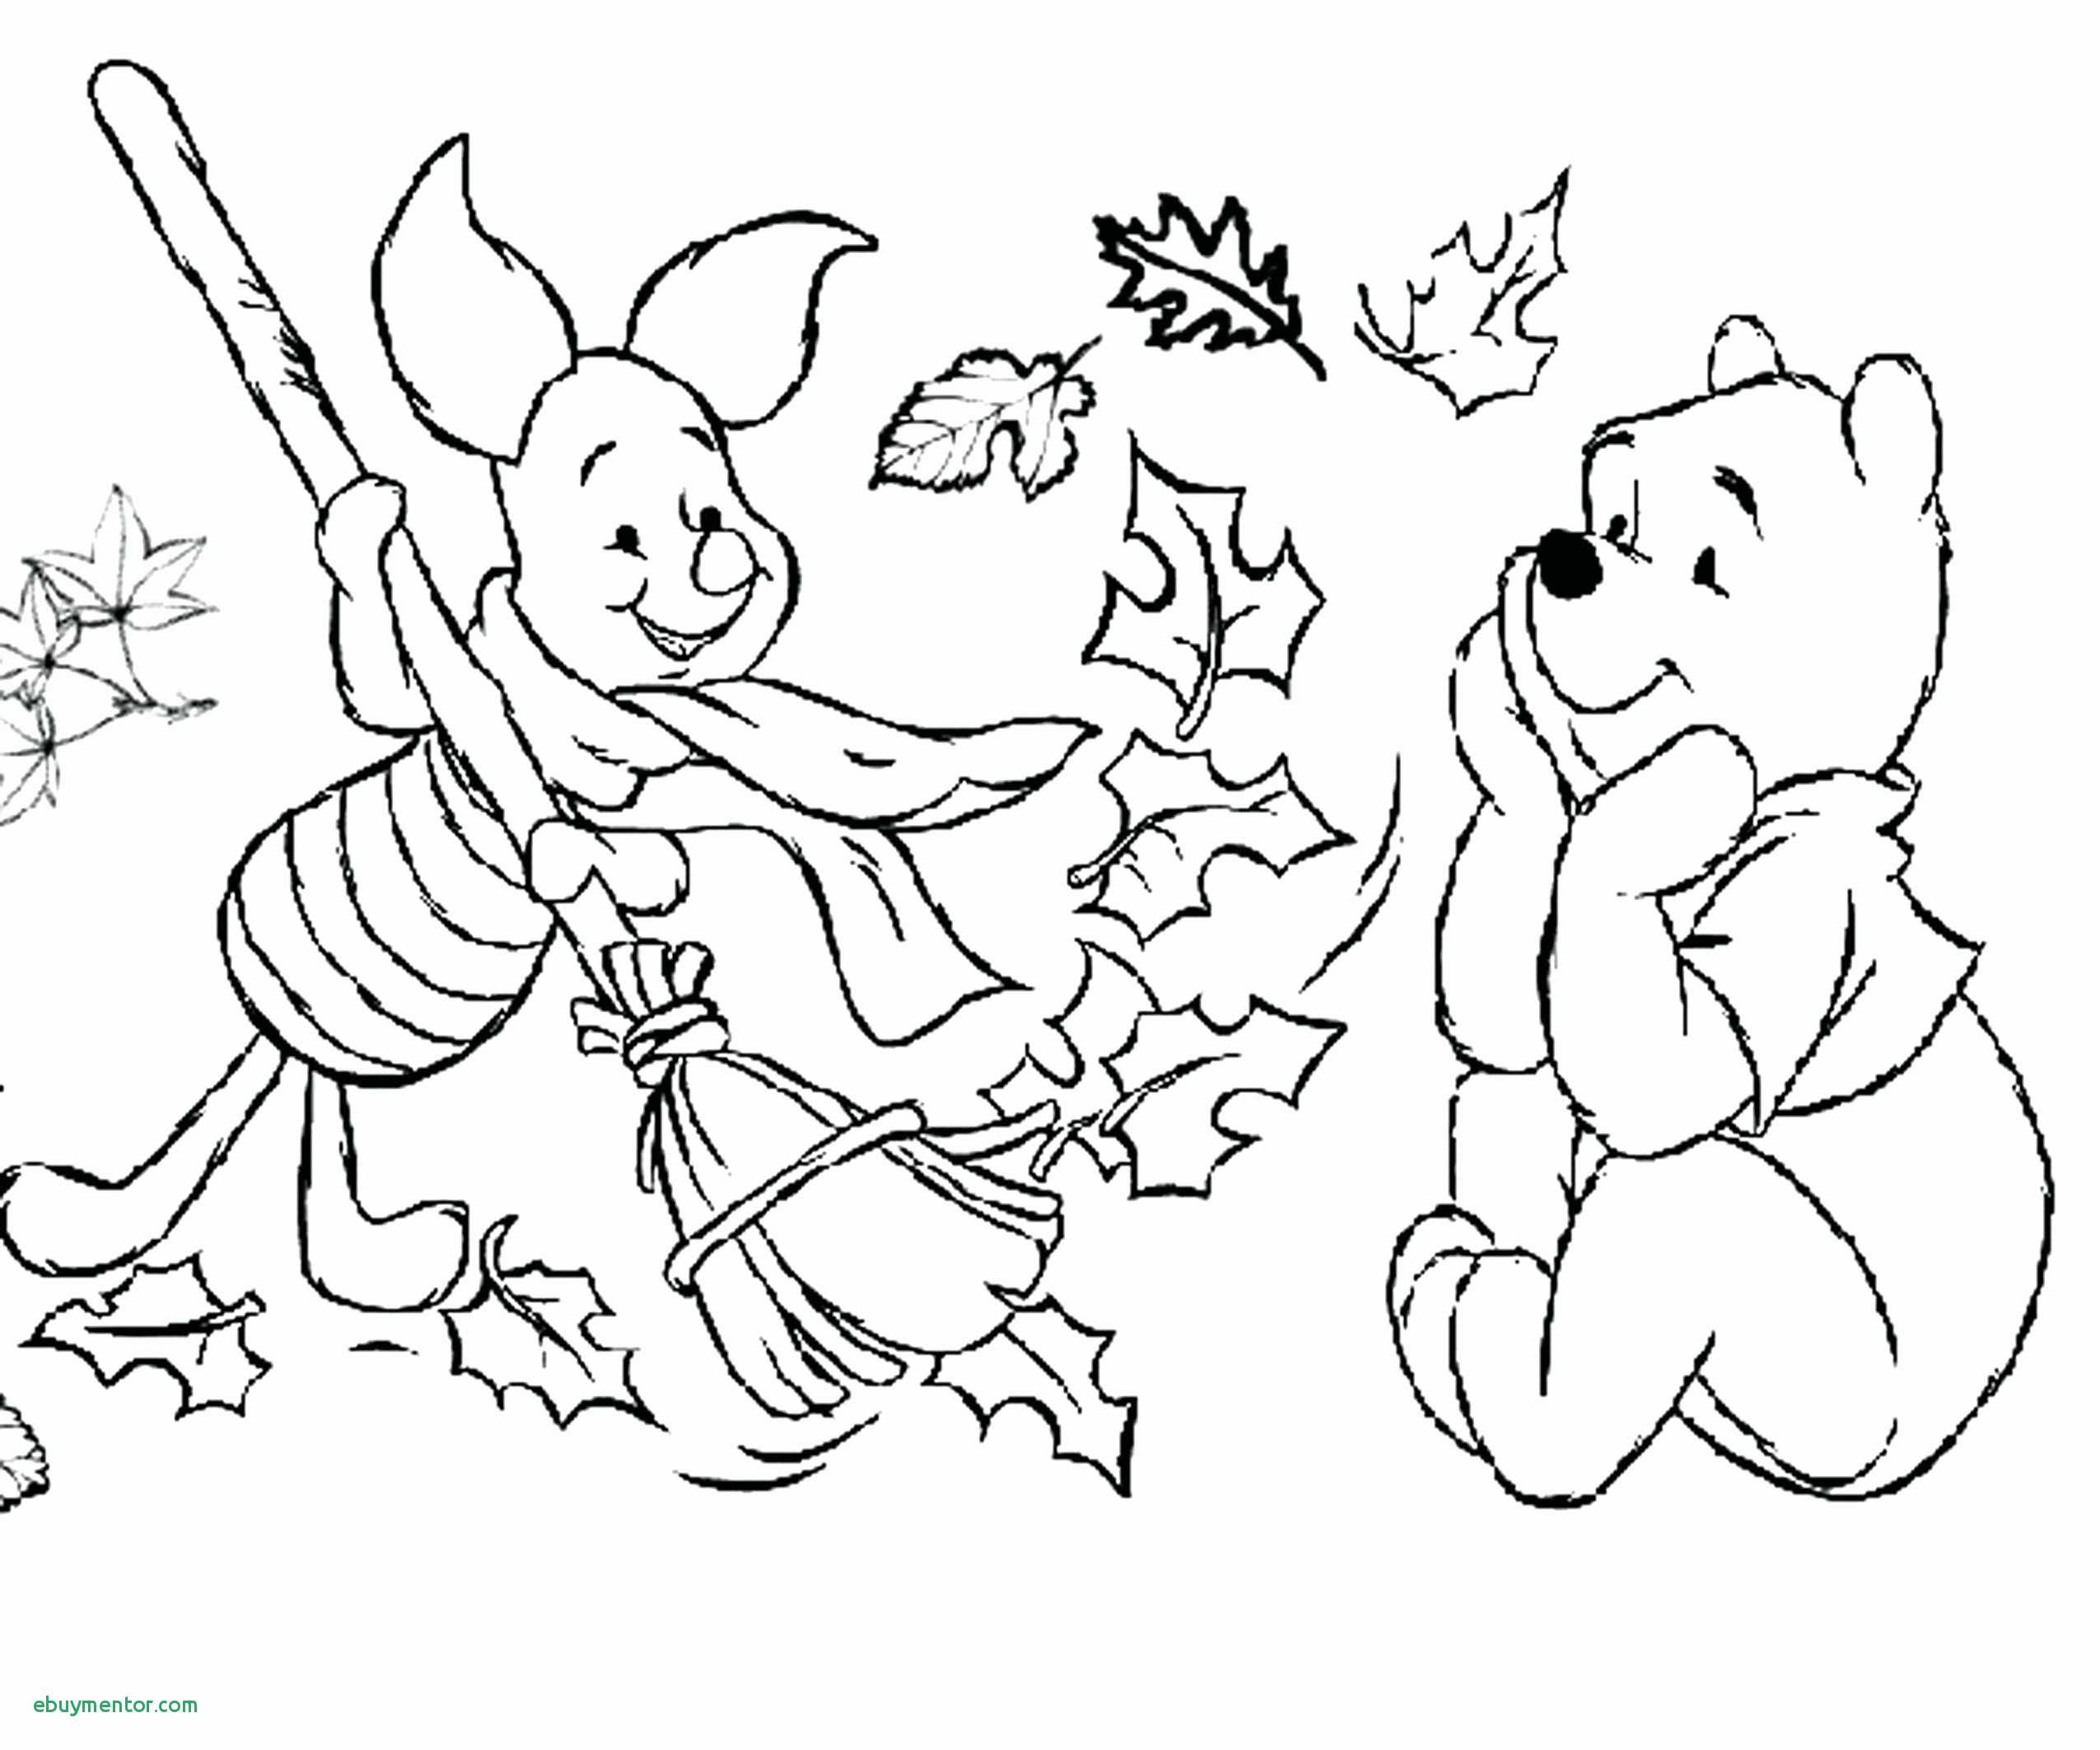 Az Coloring Pages  to Print 1f - Free Download